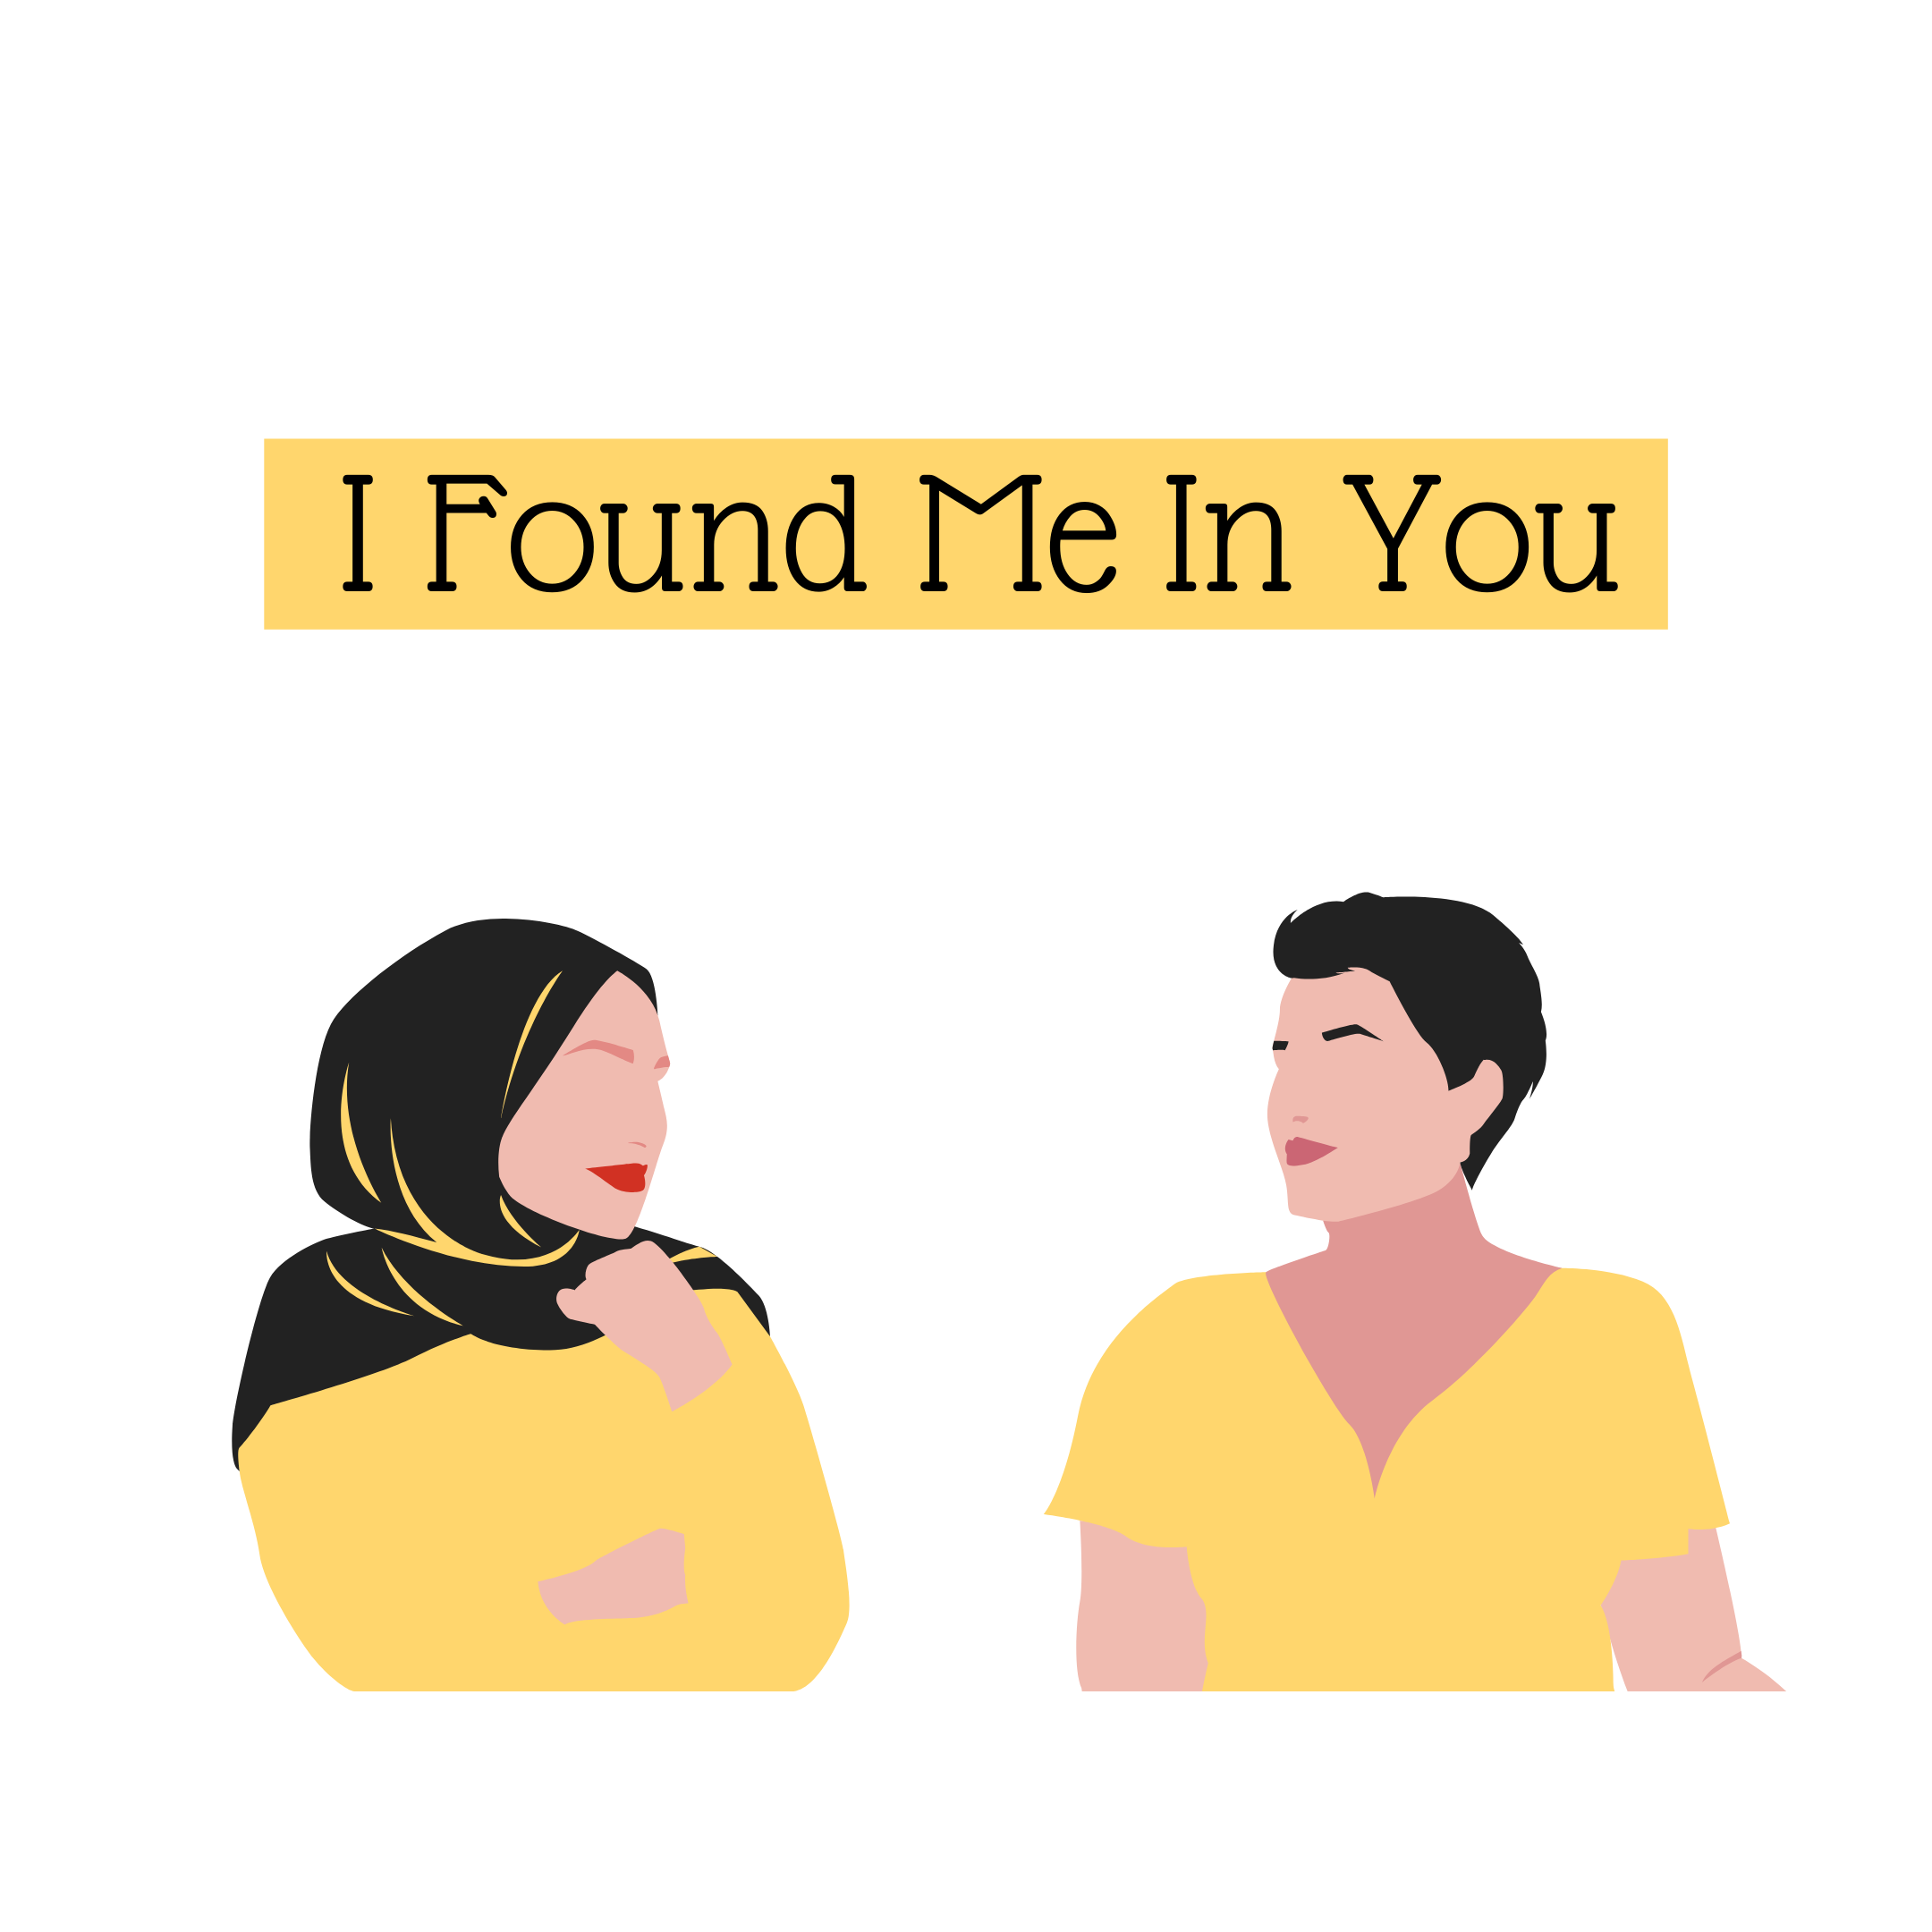 I Found Me In You